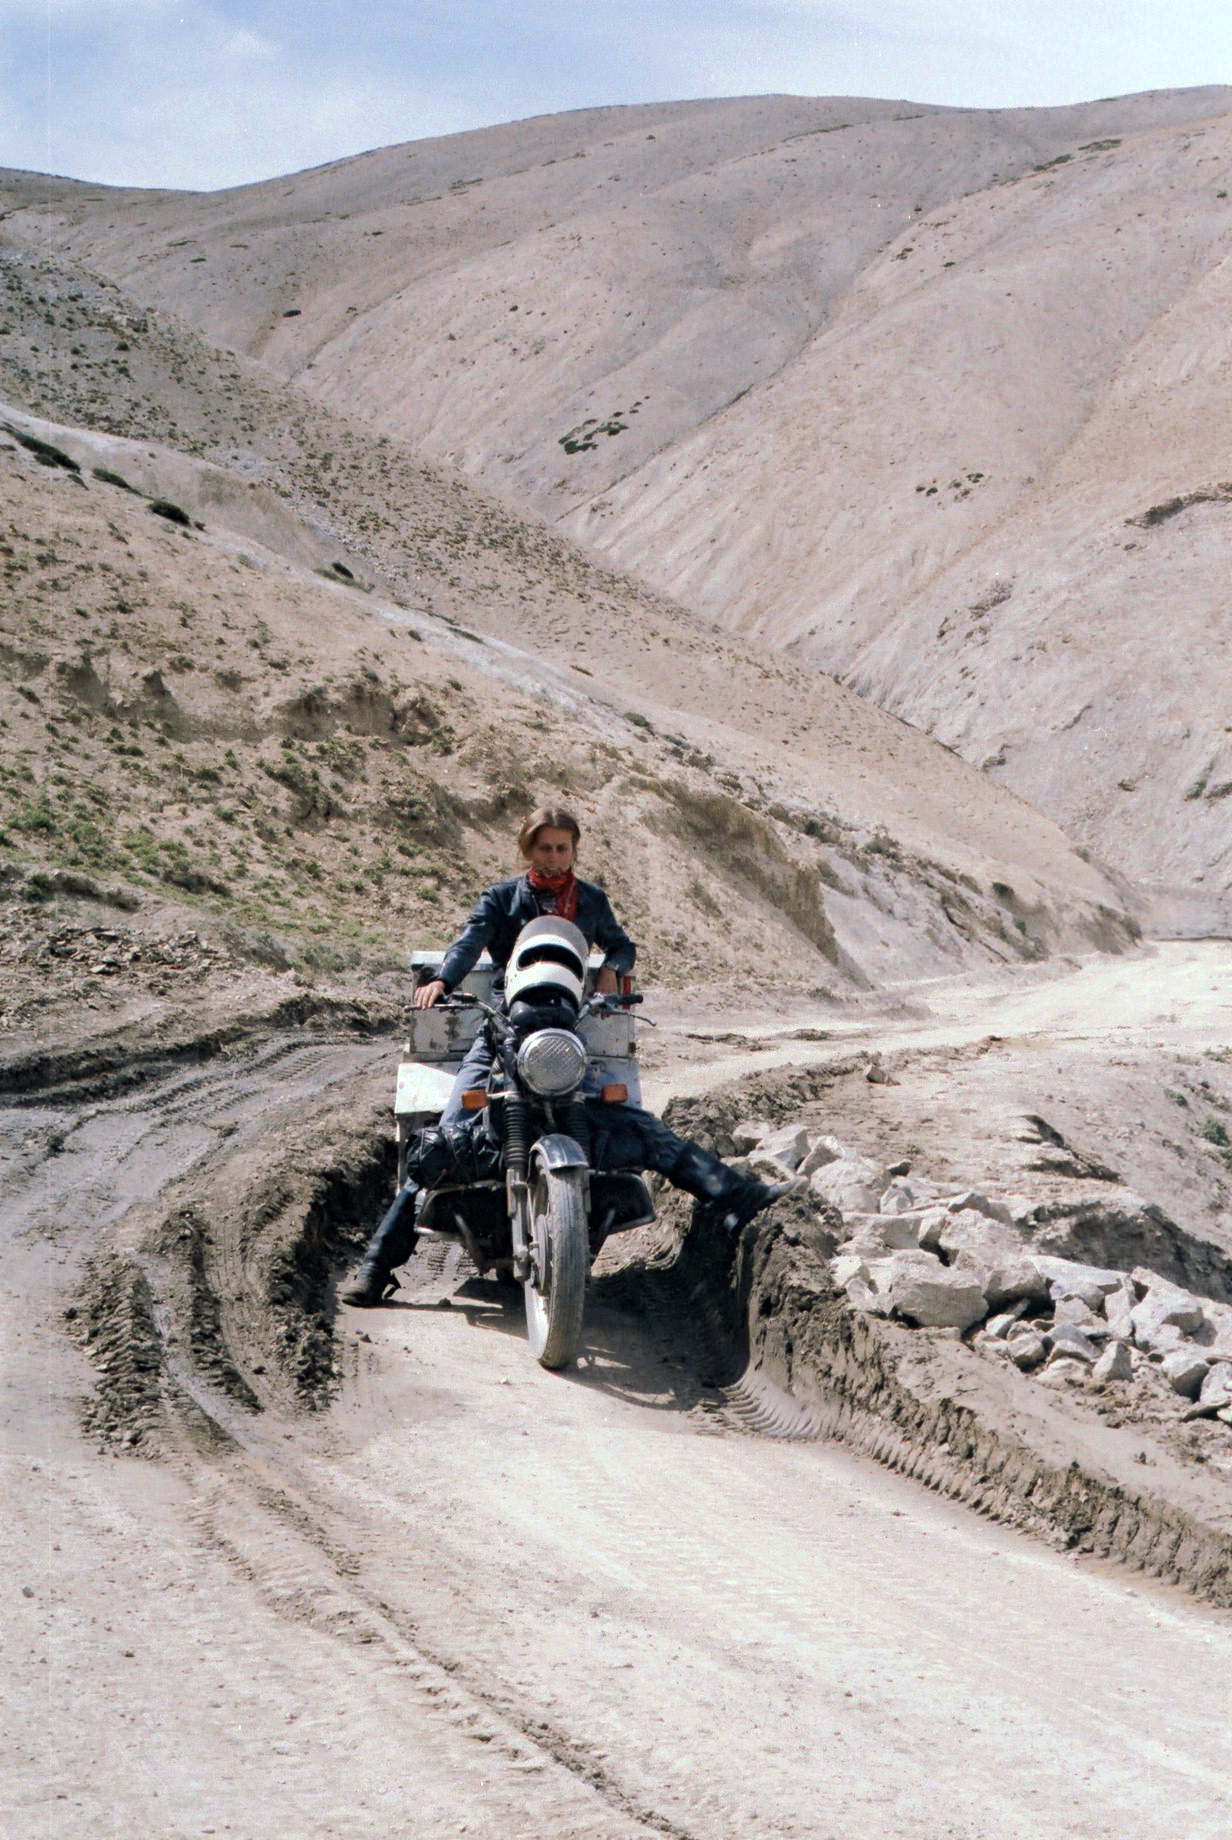 57. Road back to Srinagar - Ladakh